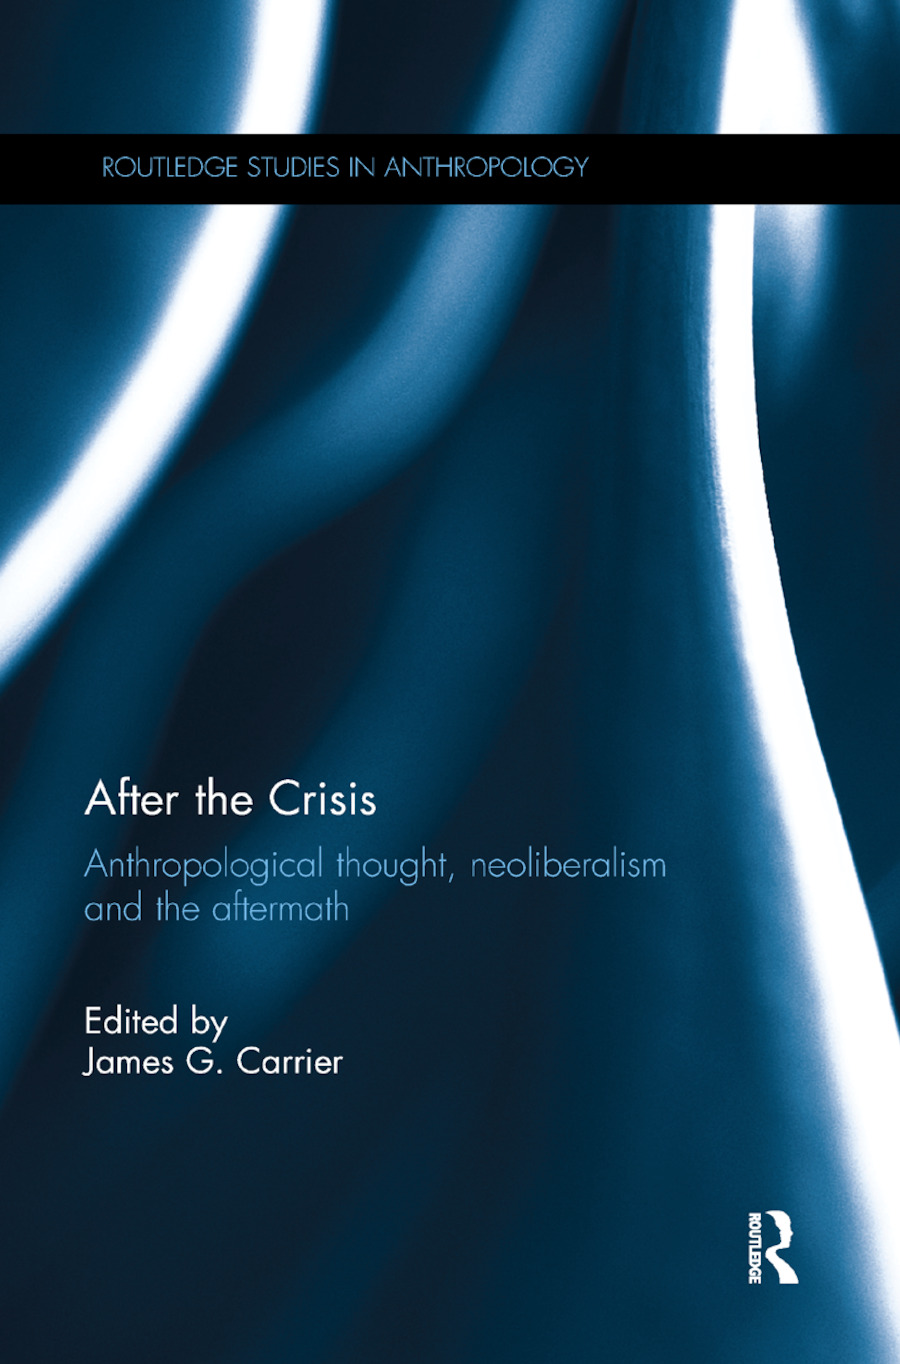 After the Crisis: Anthropological Thought, Neoliberalism and the Aftermath book cover